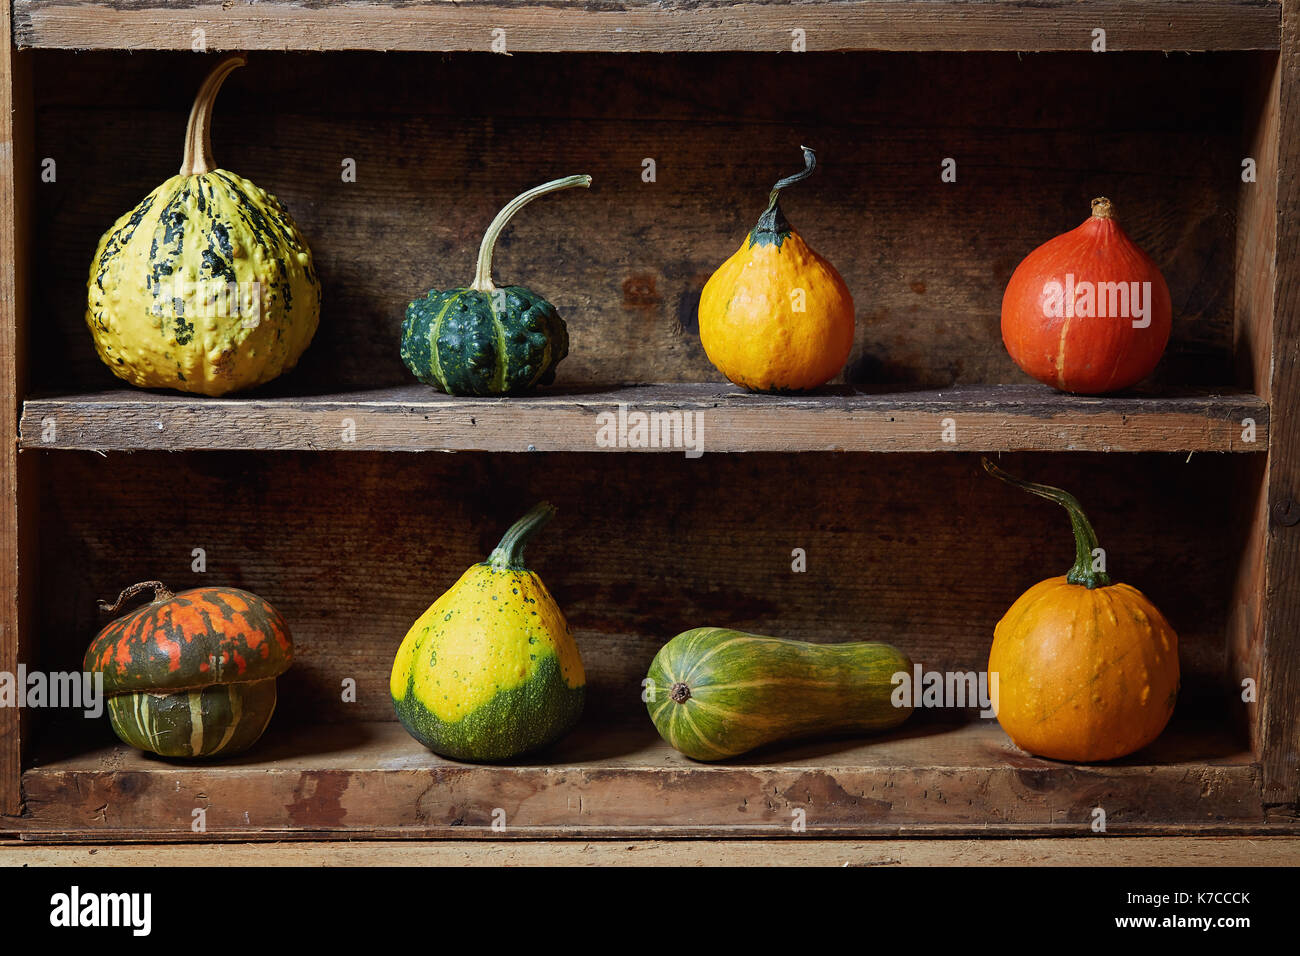 Assortment of different decorative and edible pumpkins on old wooden shelf. Still life with decorative gourd. - Stock Image